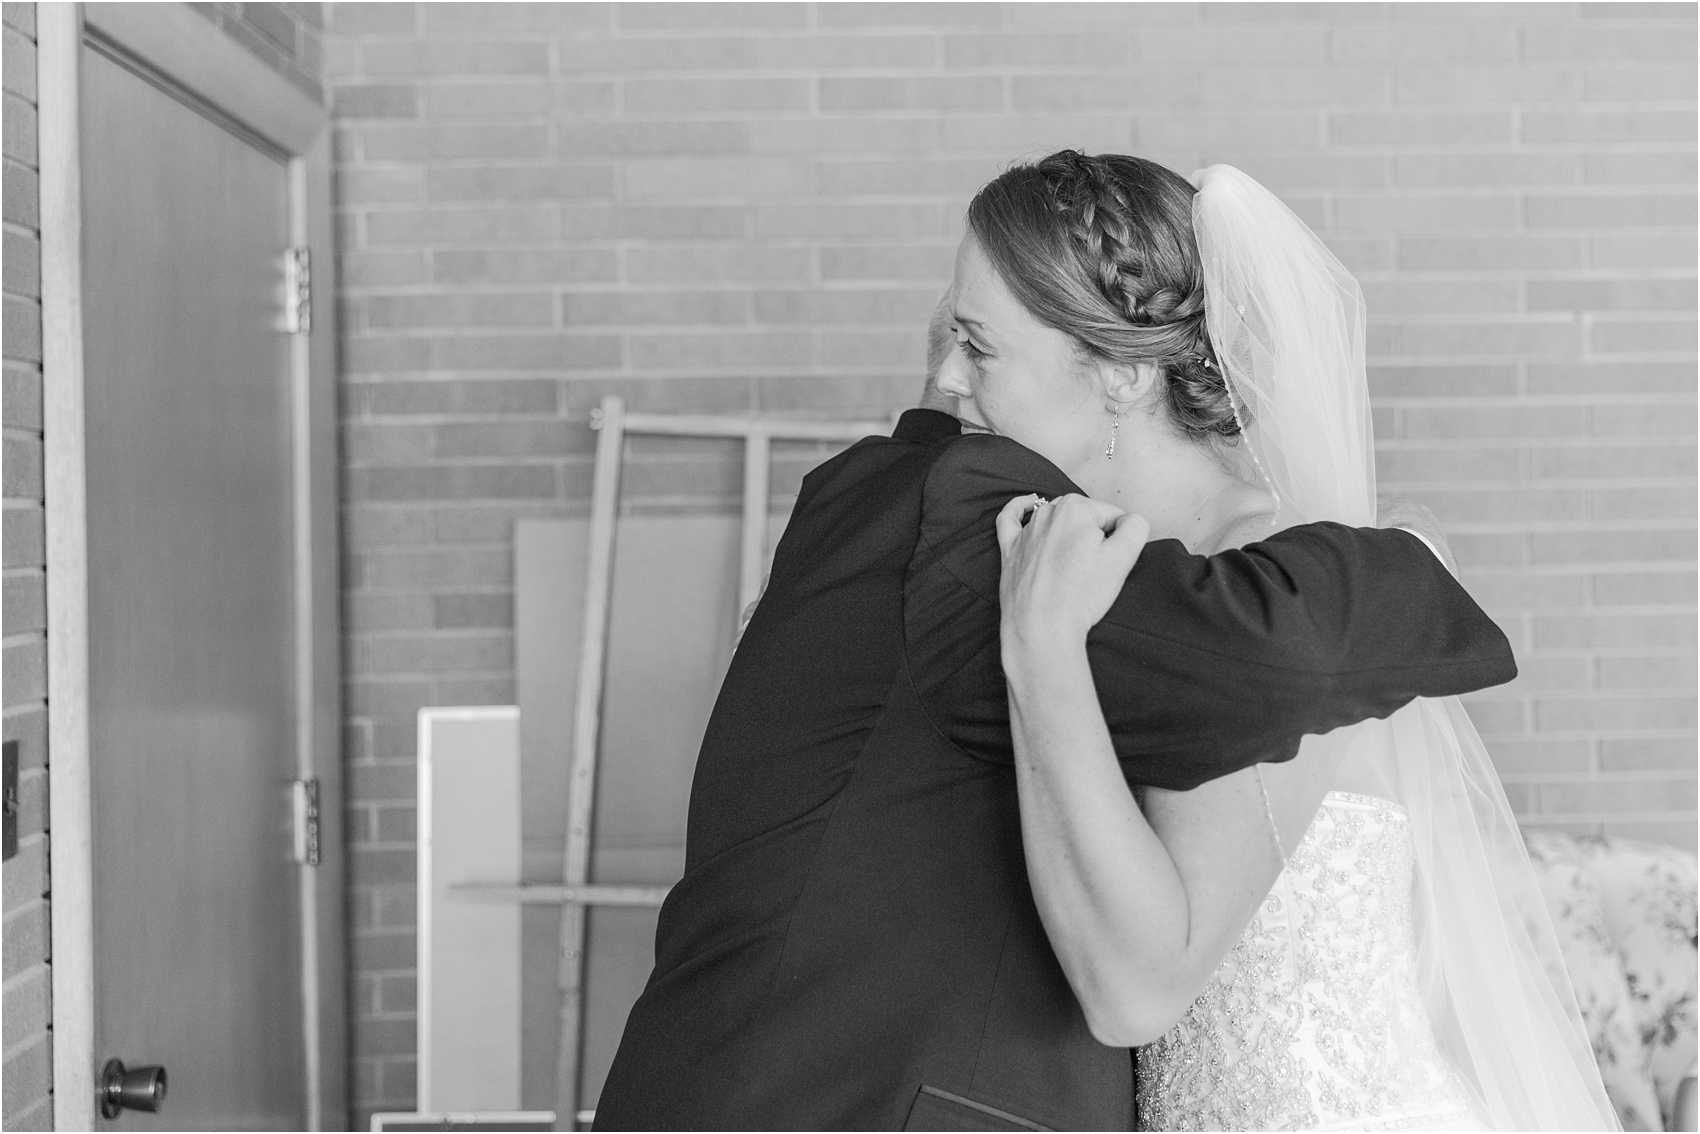 father-and-bride-share-emotional-first-look-on-wedding-day-photos-in-detroit-michigan-by-courtney-carolyn-photography_0029.jpg